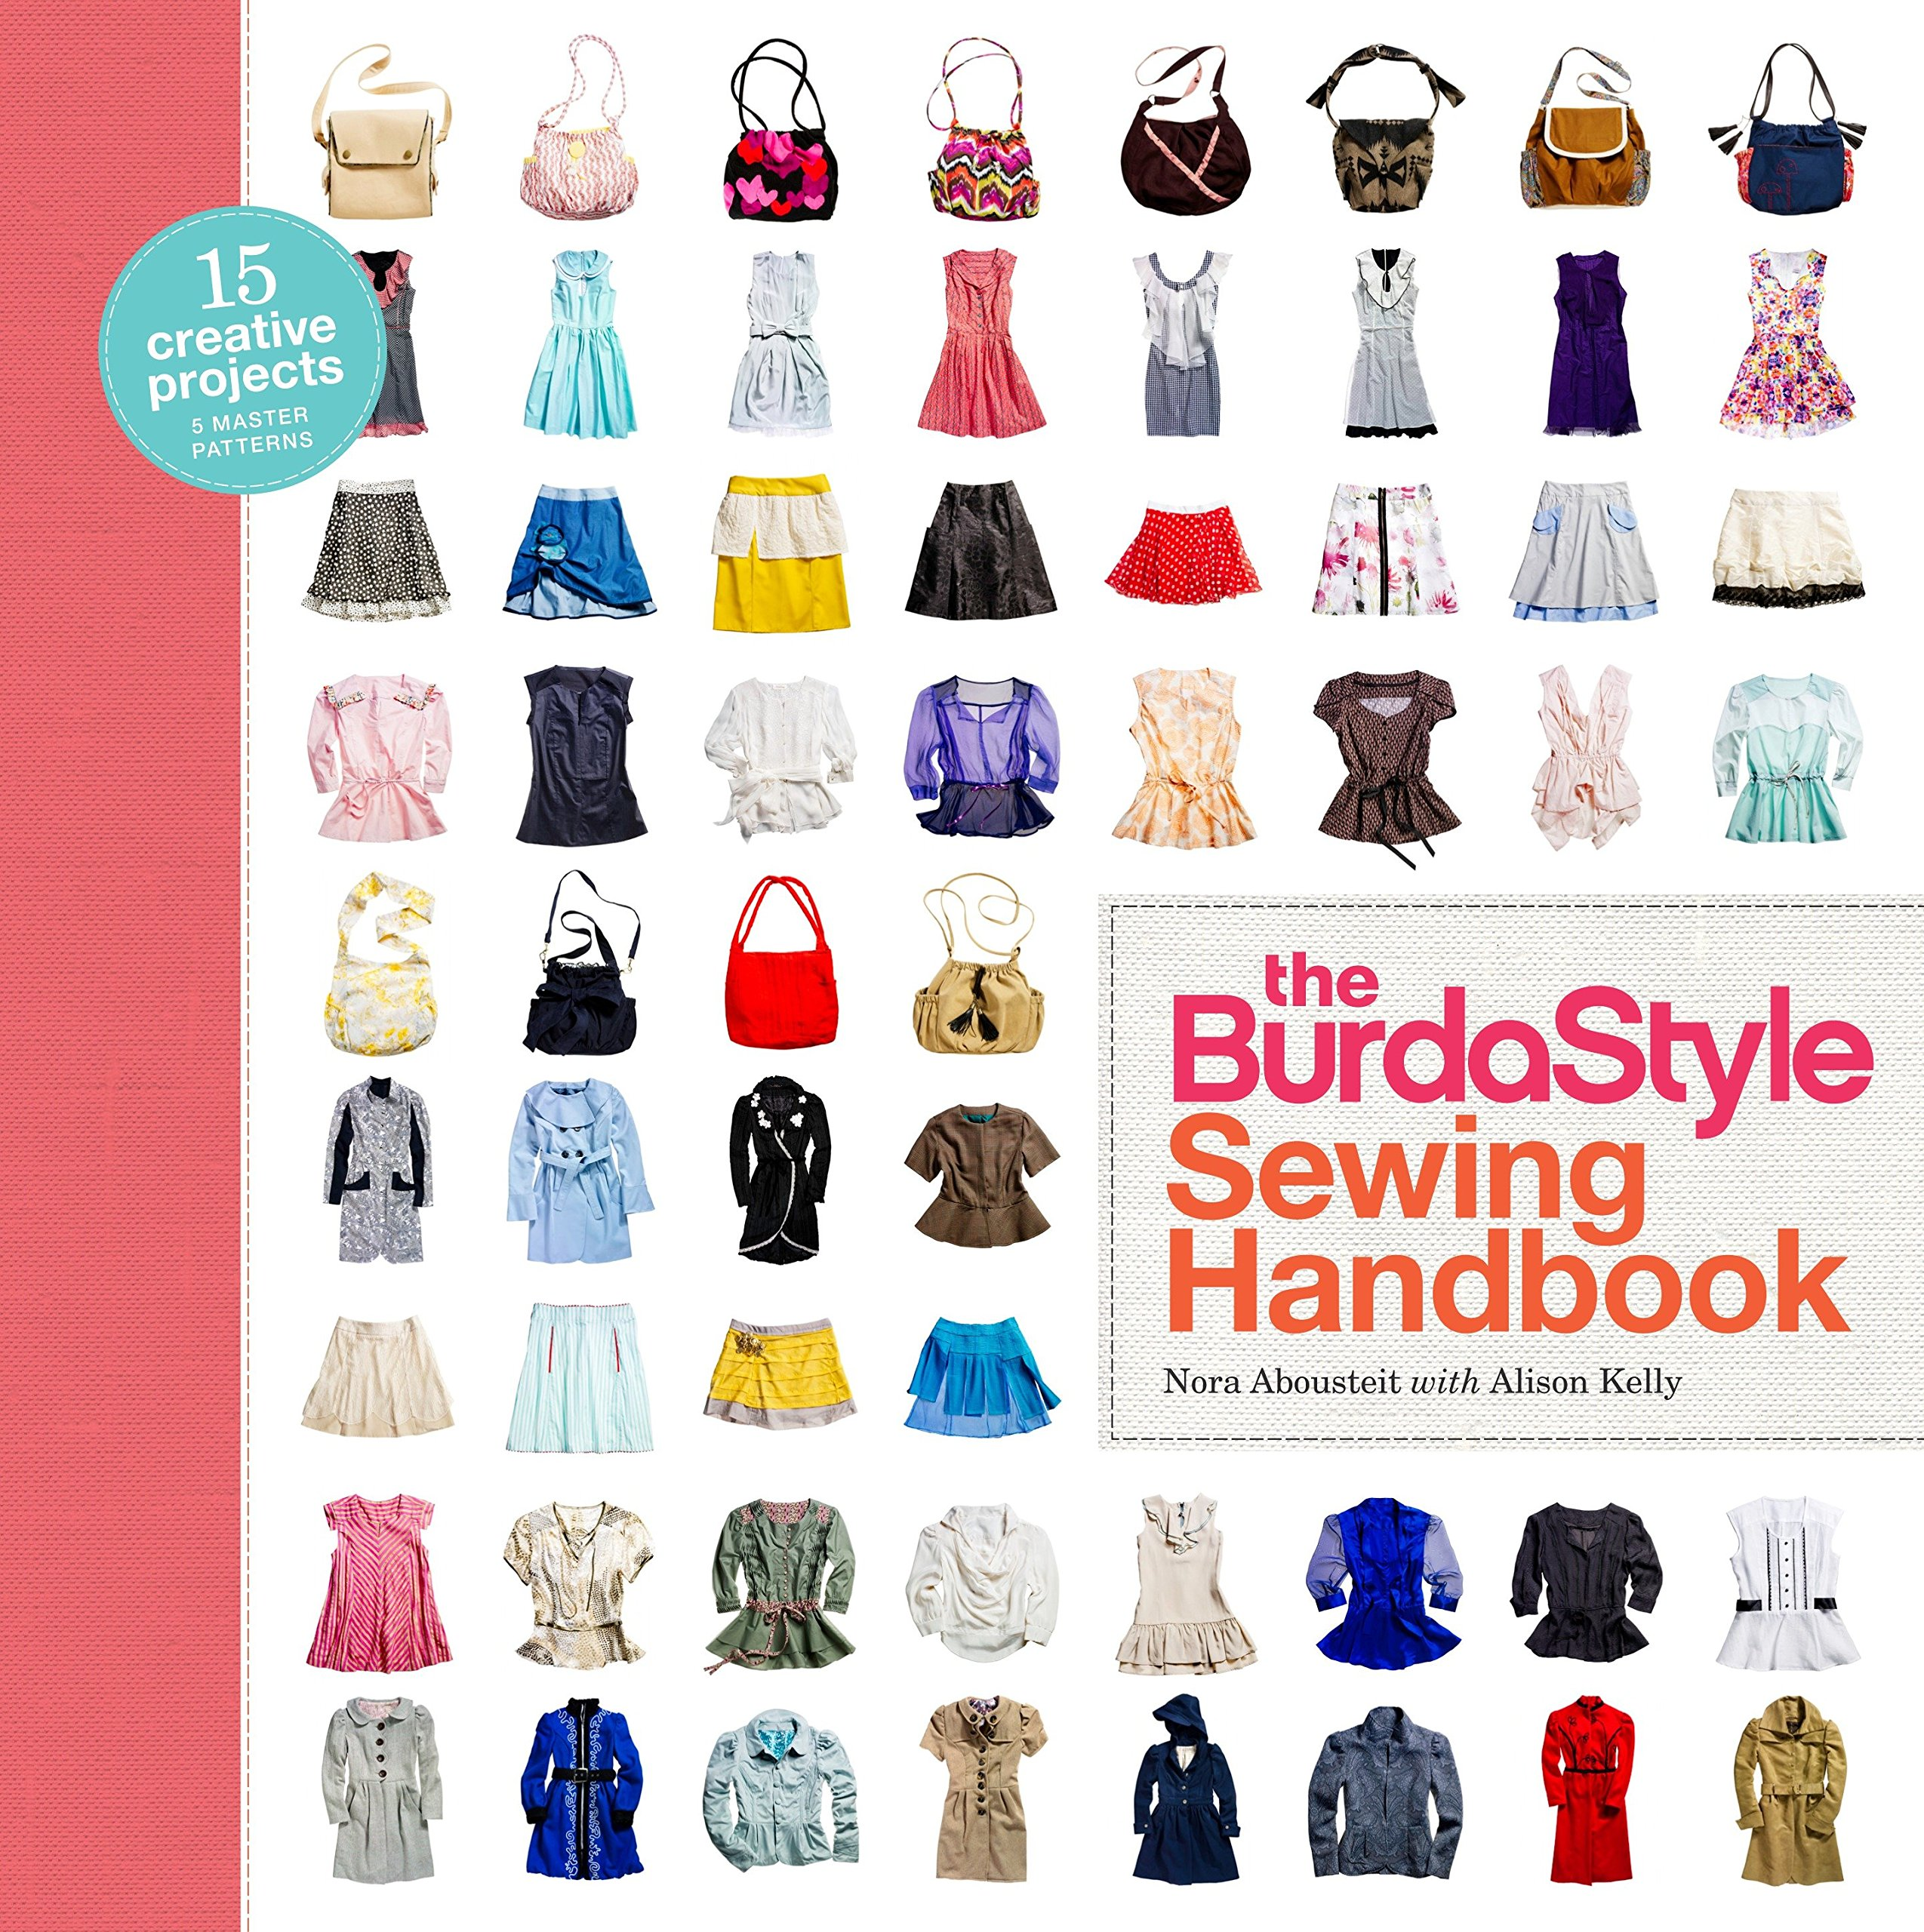 The BurdaStyle Sewing Handbook: Amazon.fr: Abousteit, Nora, Kelly, Alison,  BurdaStyle: Livres anglais et étrangers